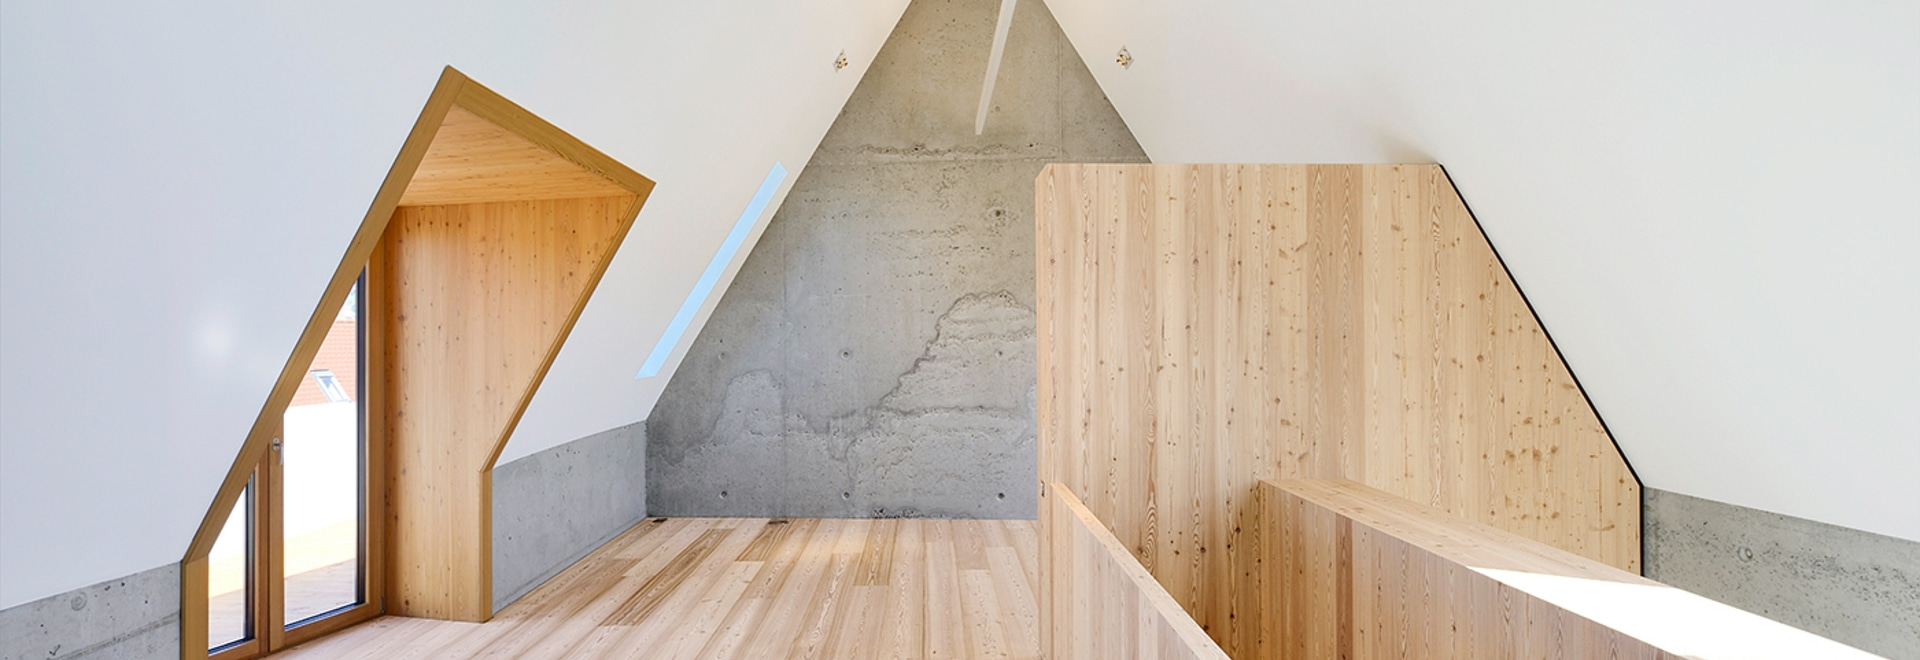 "mafi ""LARCH, brushed, lye treated, white oil"" meets exposed concrete"